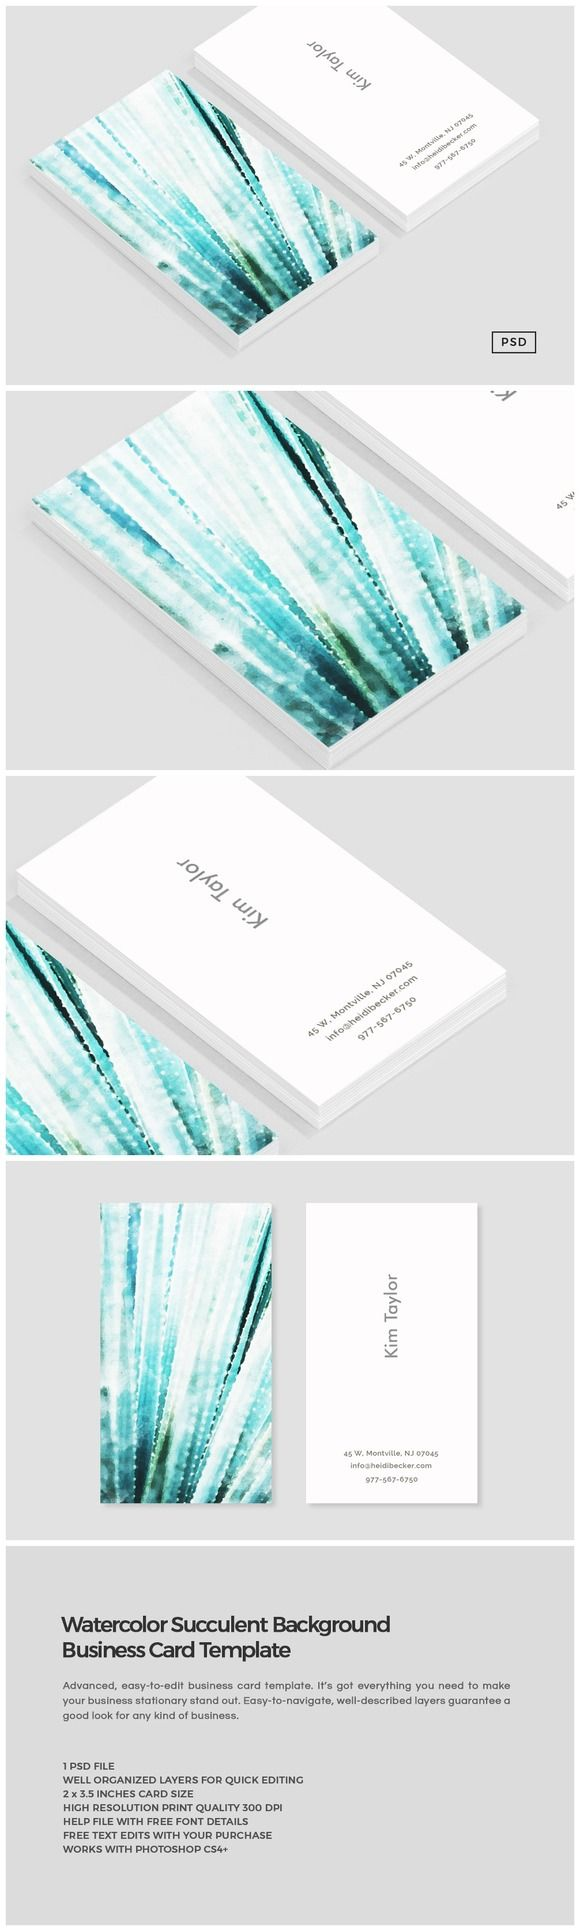 Watercolor Succulent Business Card by The Design Label on ...